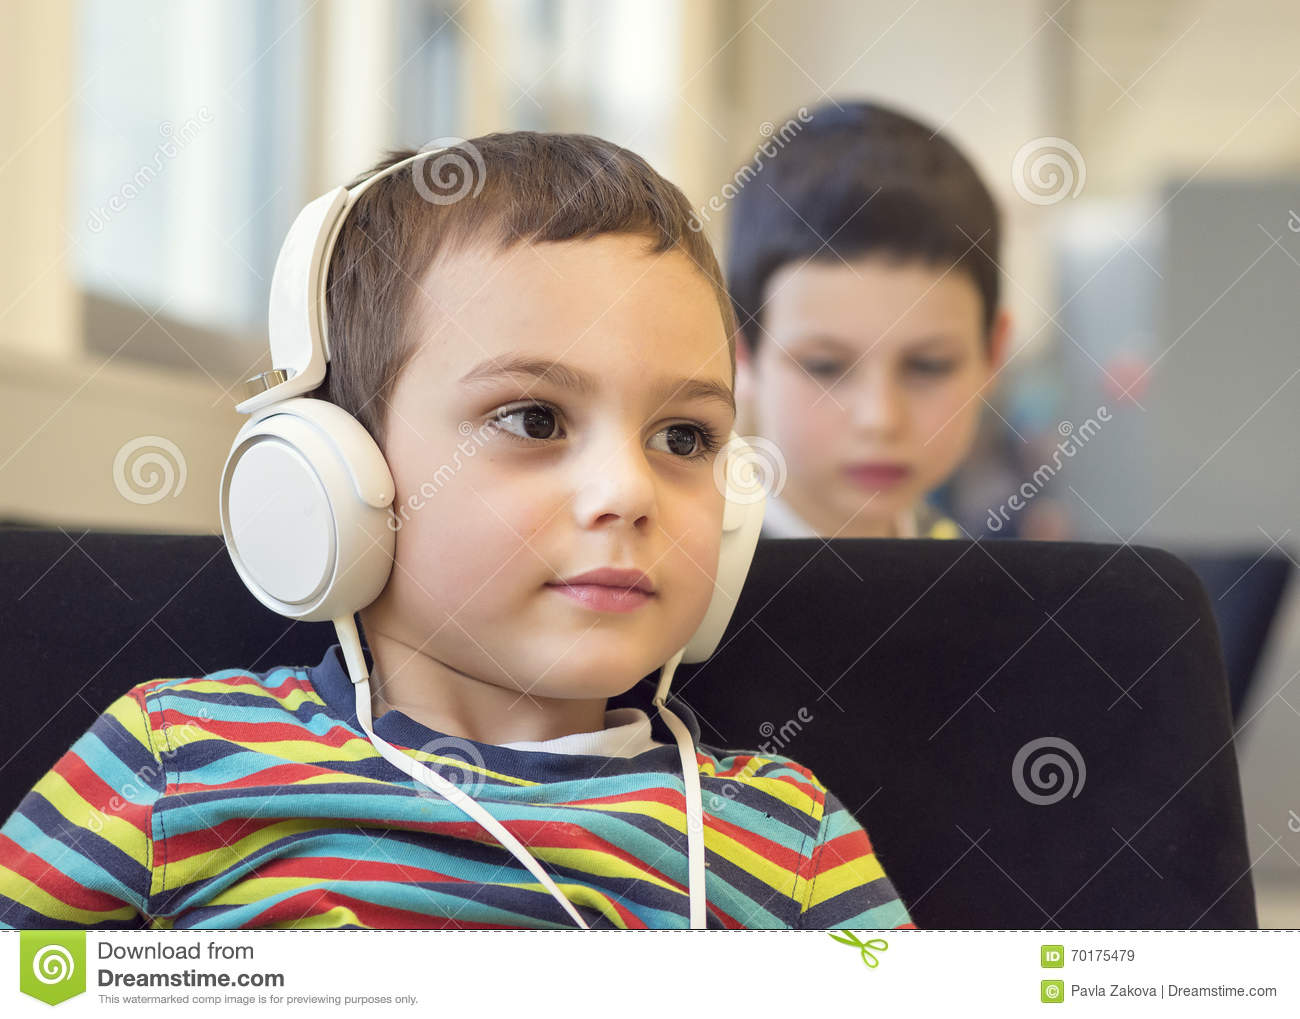 Child With Headphones In School Or Library Stock Image Image Of